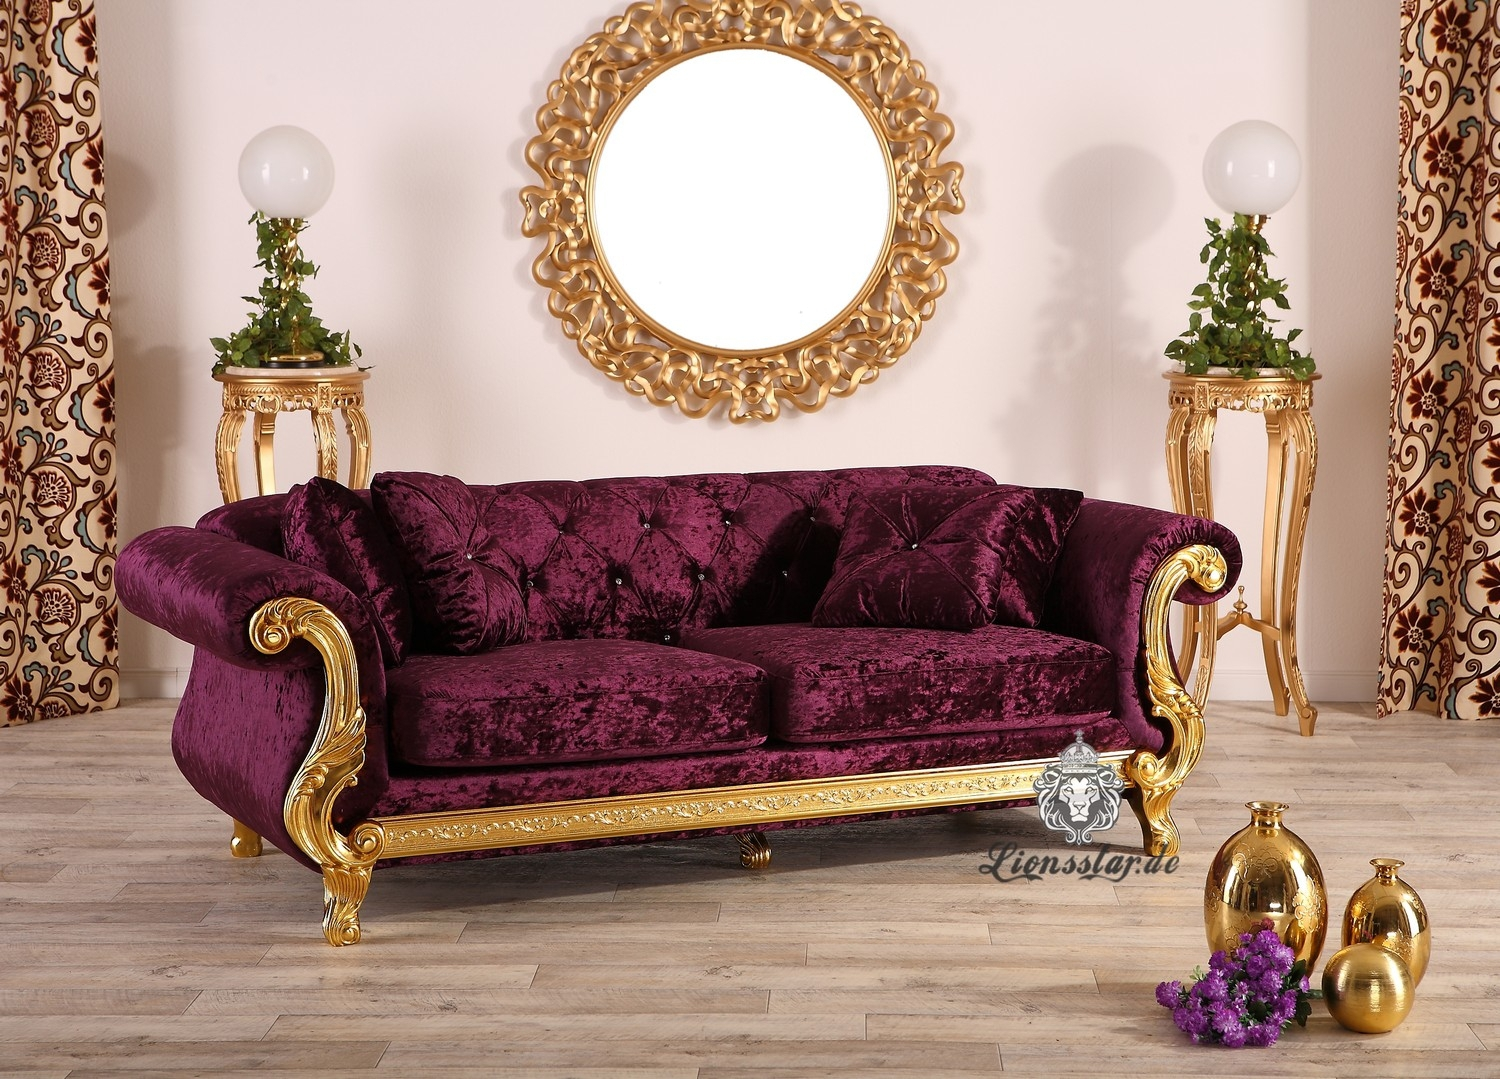 Barock sthle gnstig trendy deep red velvet gold solid for Sofa barock